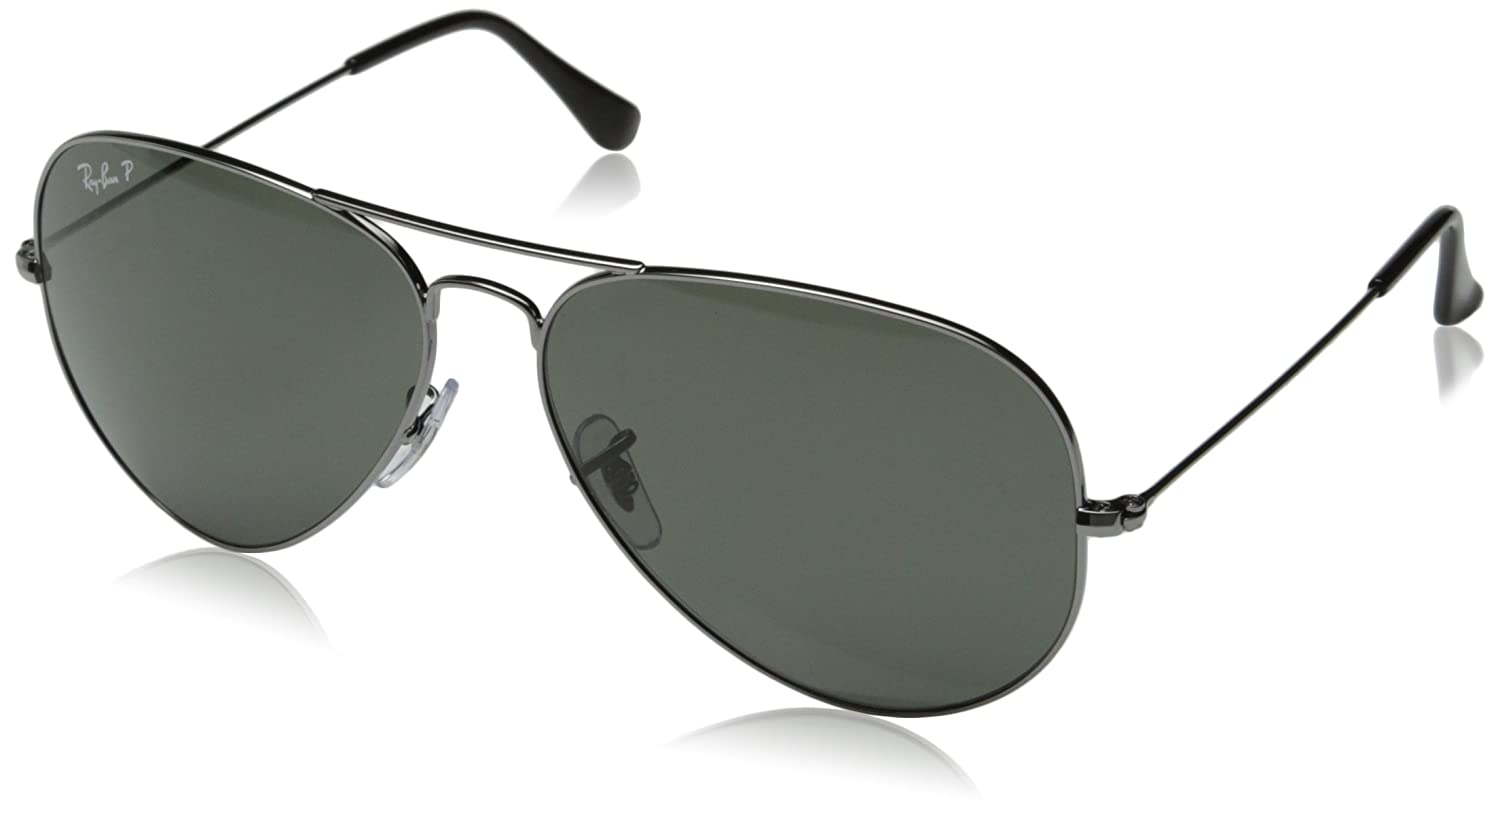 0f28b33a35c Amazon.com  Ray-Ban 3025 Aviator Large Metal Non-Mirrored Polarized  Sunglasses  Clothing